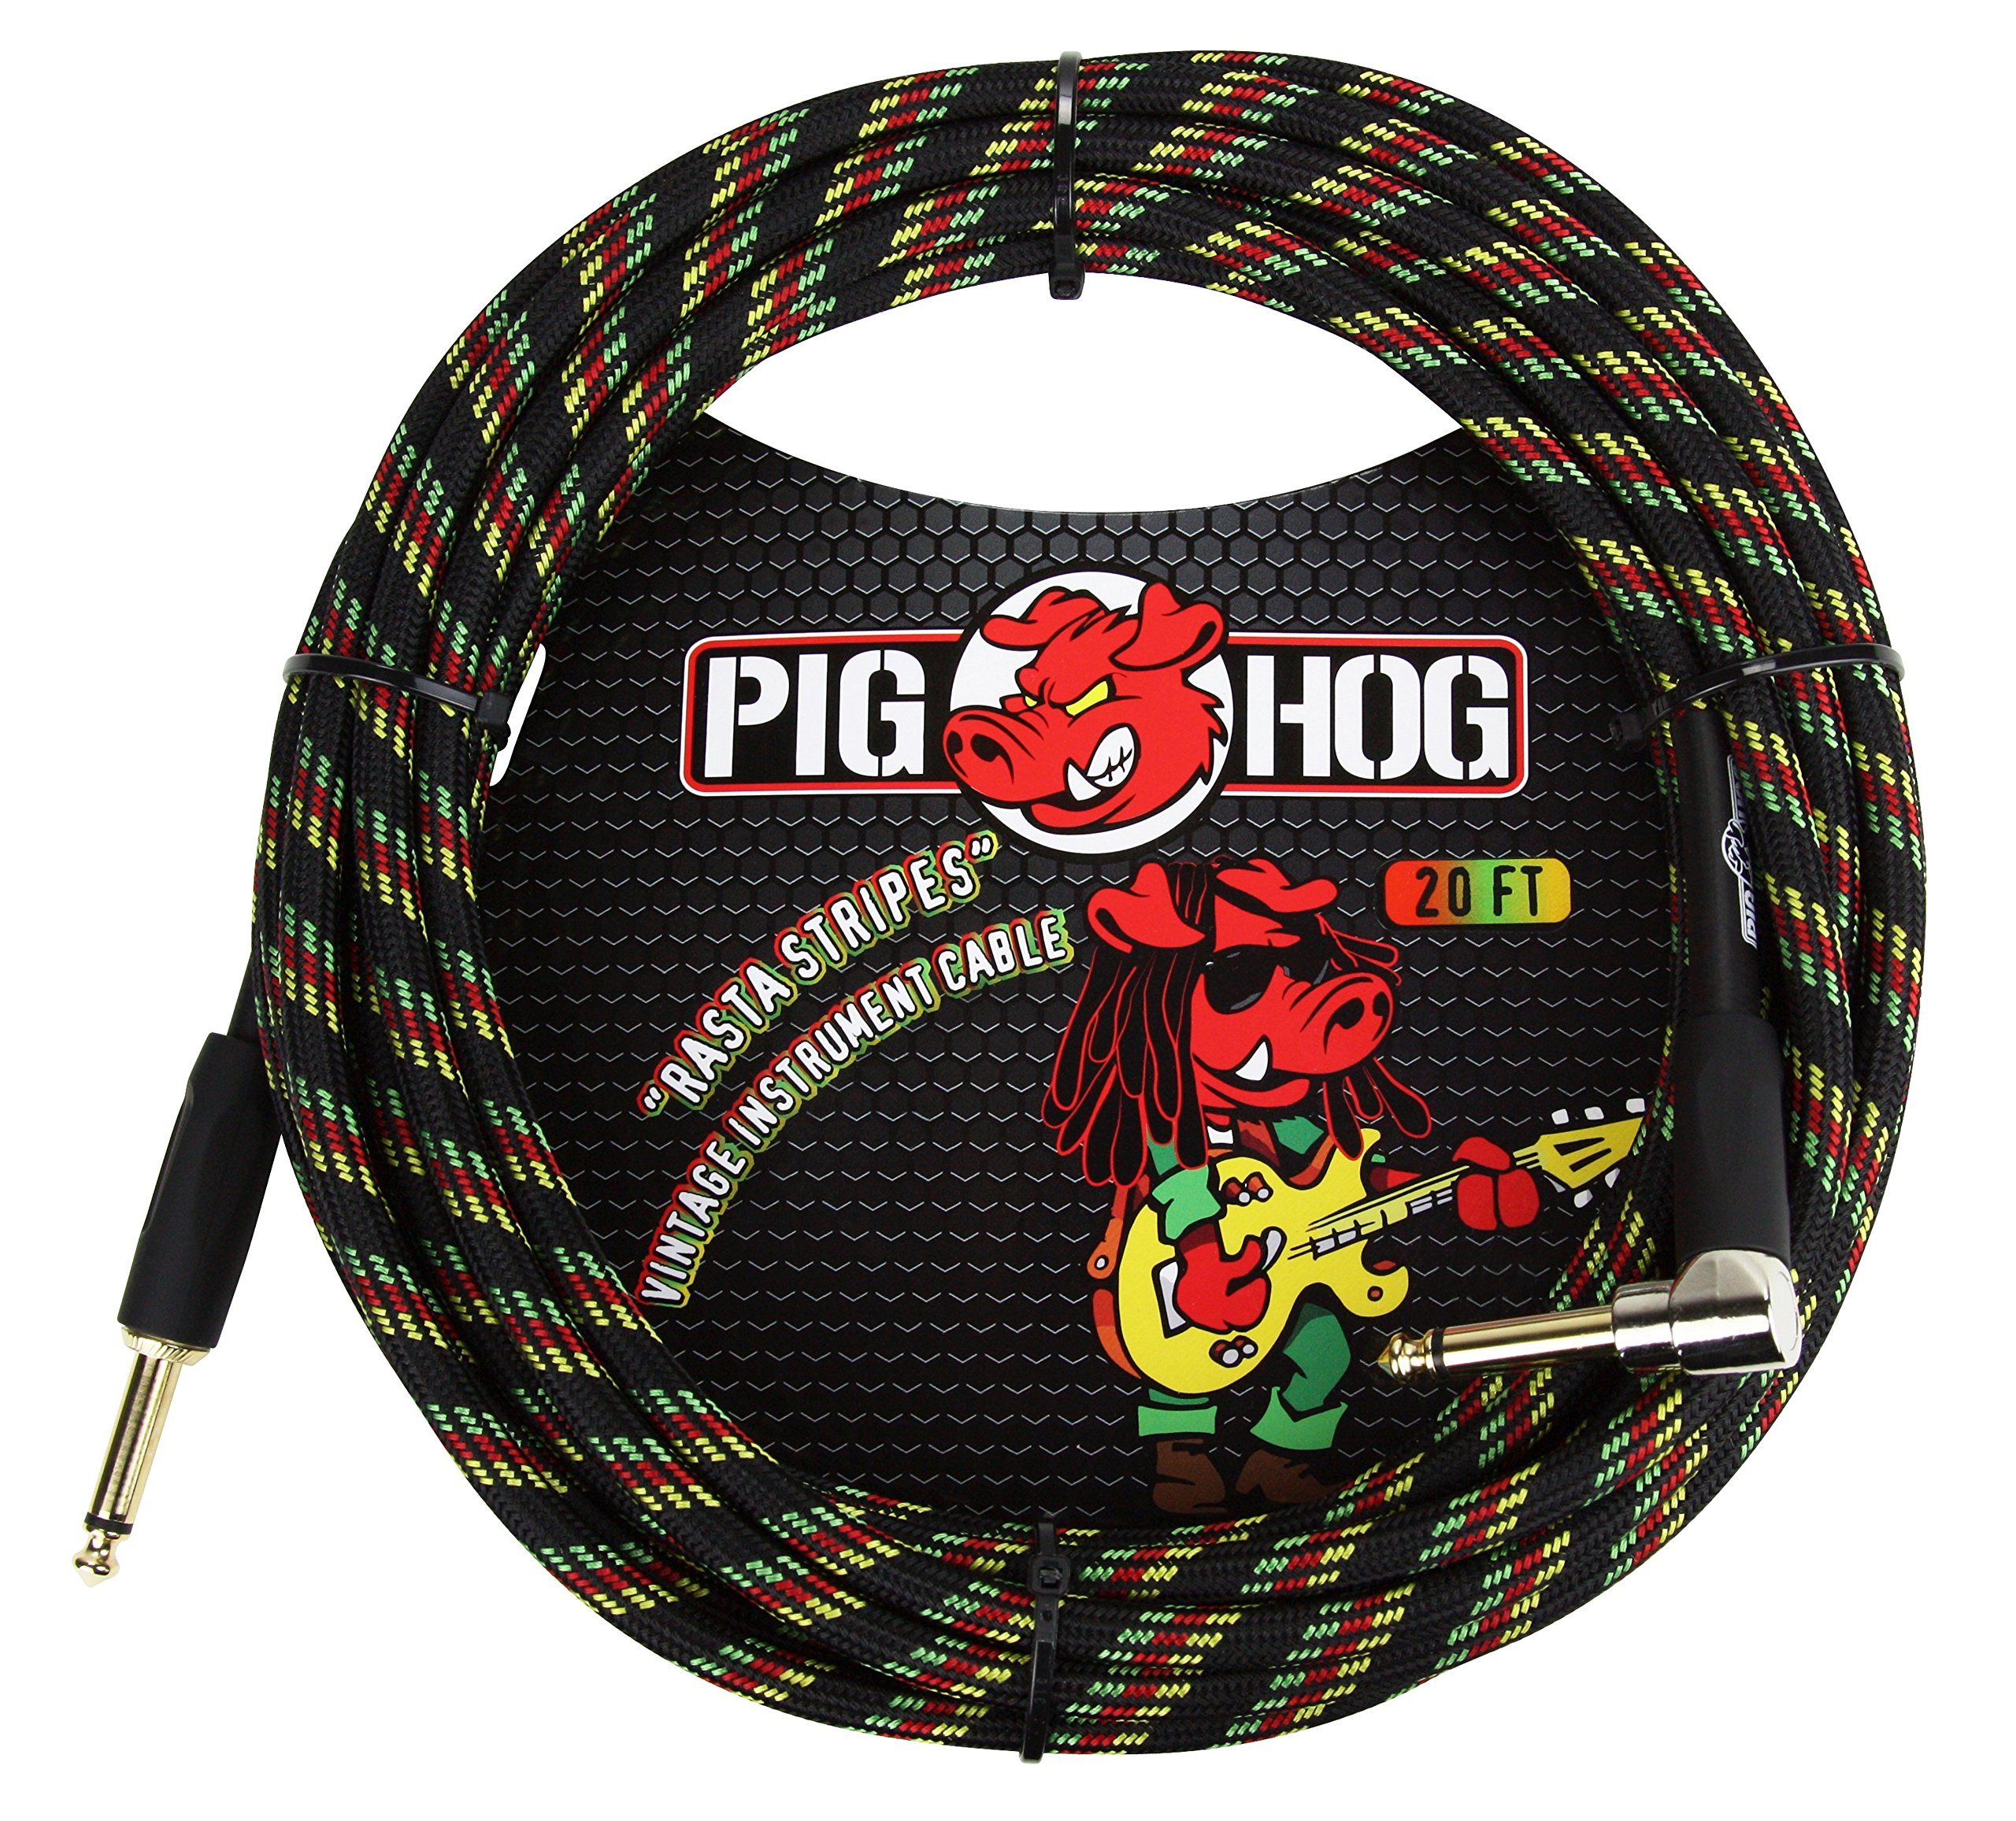 Pig Hog PCH20RAR Right-Angle'' to 1/4'' Rasta Stripes Guitar Instrument Cable, 20 Feet